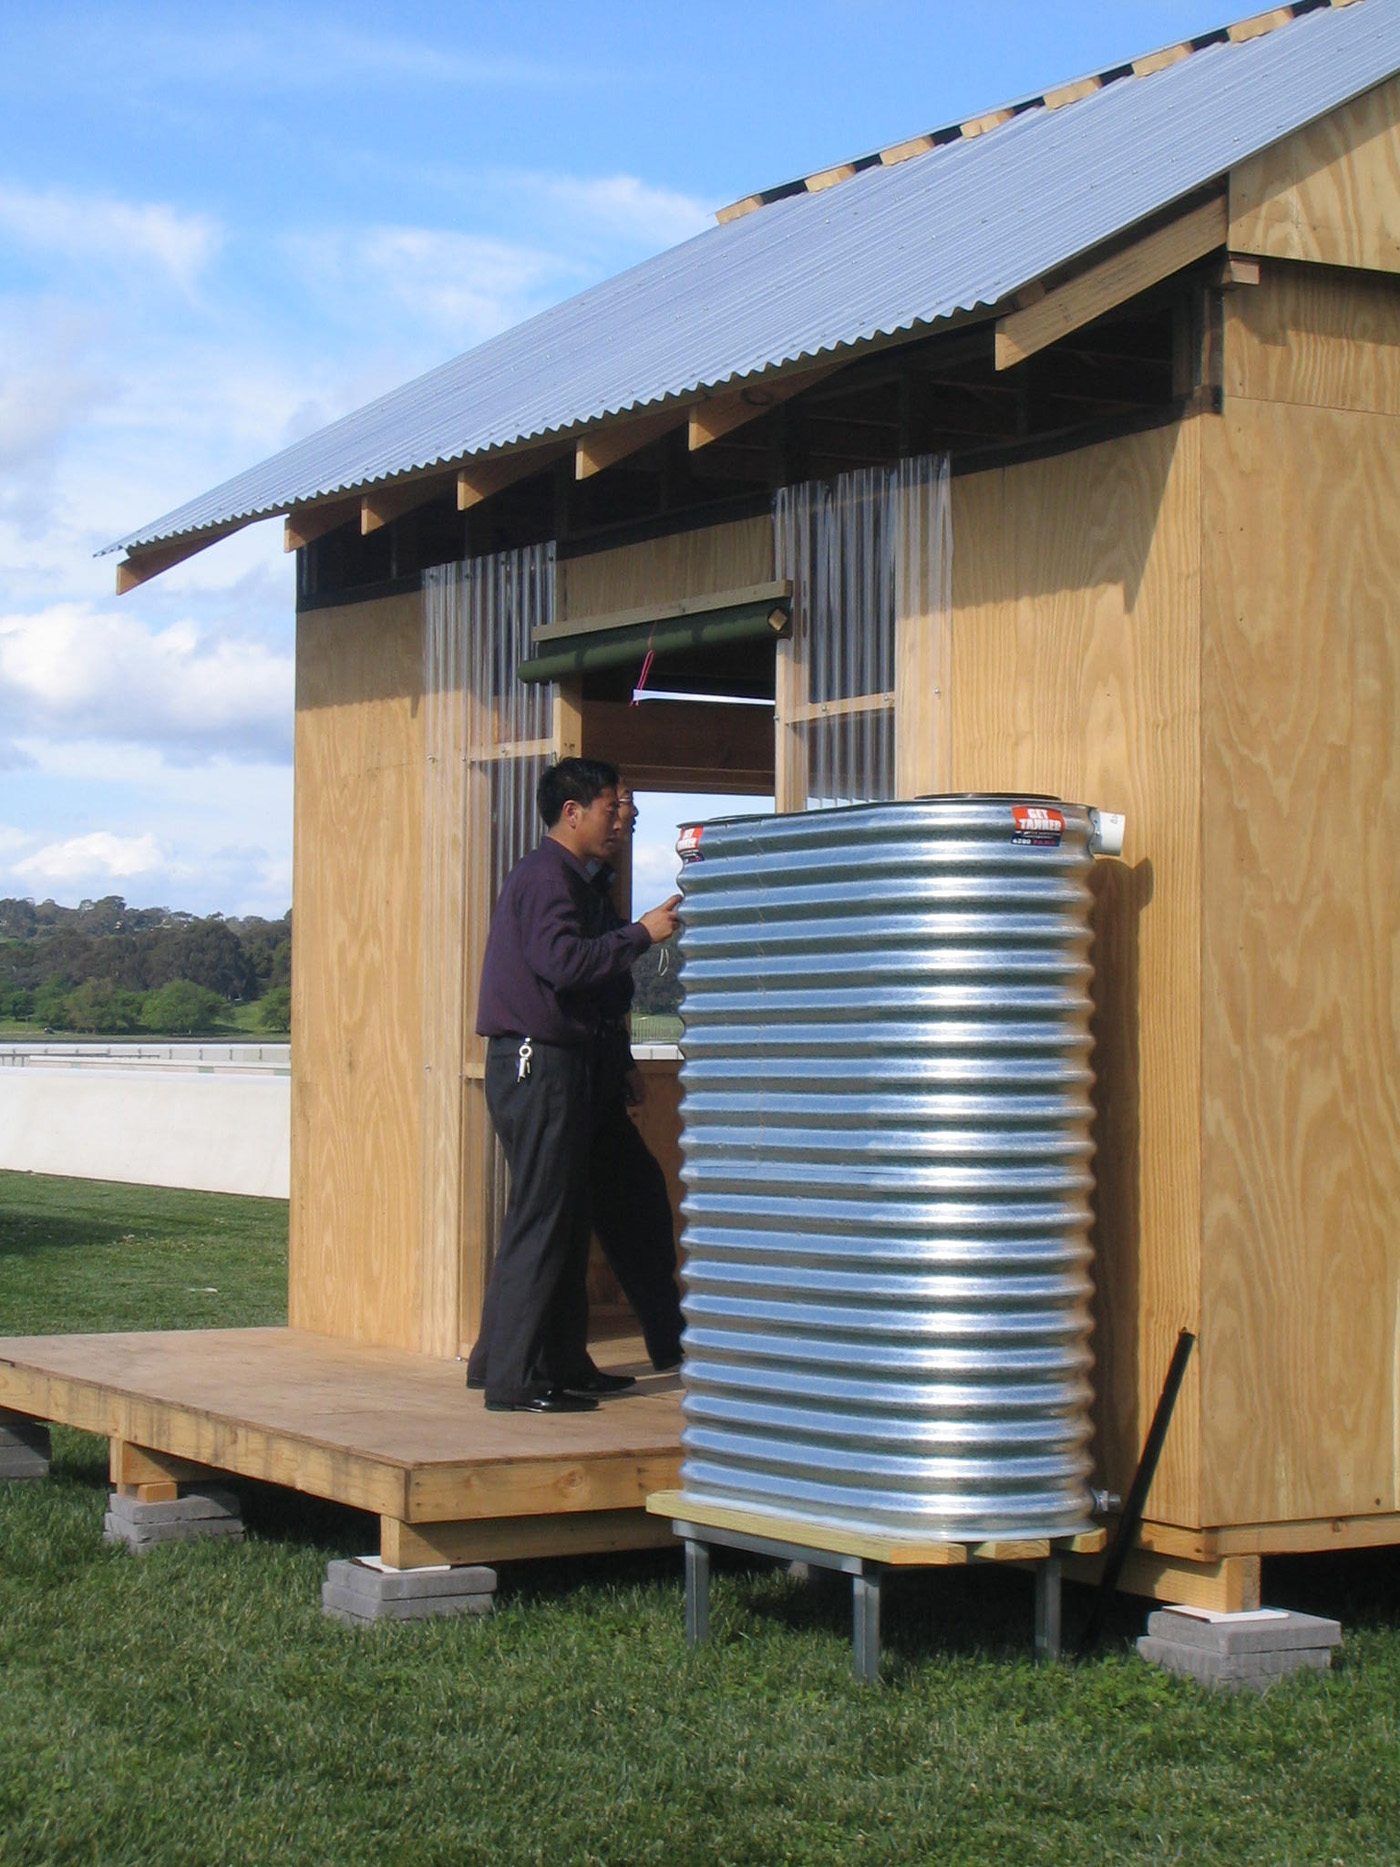 Disaster Relief Housing by Sydney award winning architecture office Sam Crawford Architects. Low cost shelter prototype.